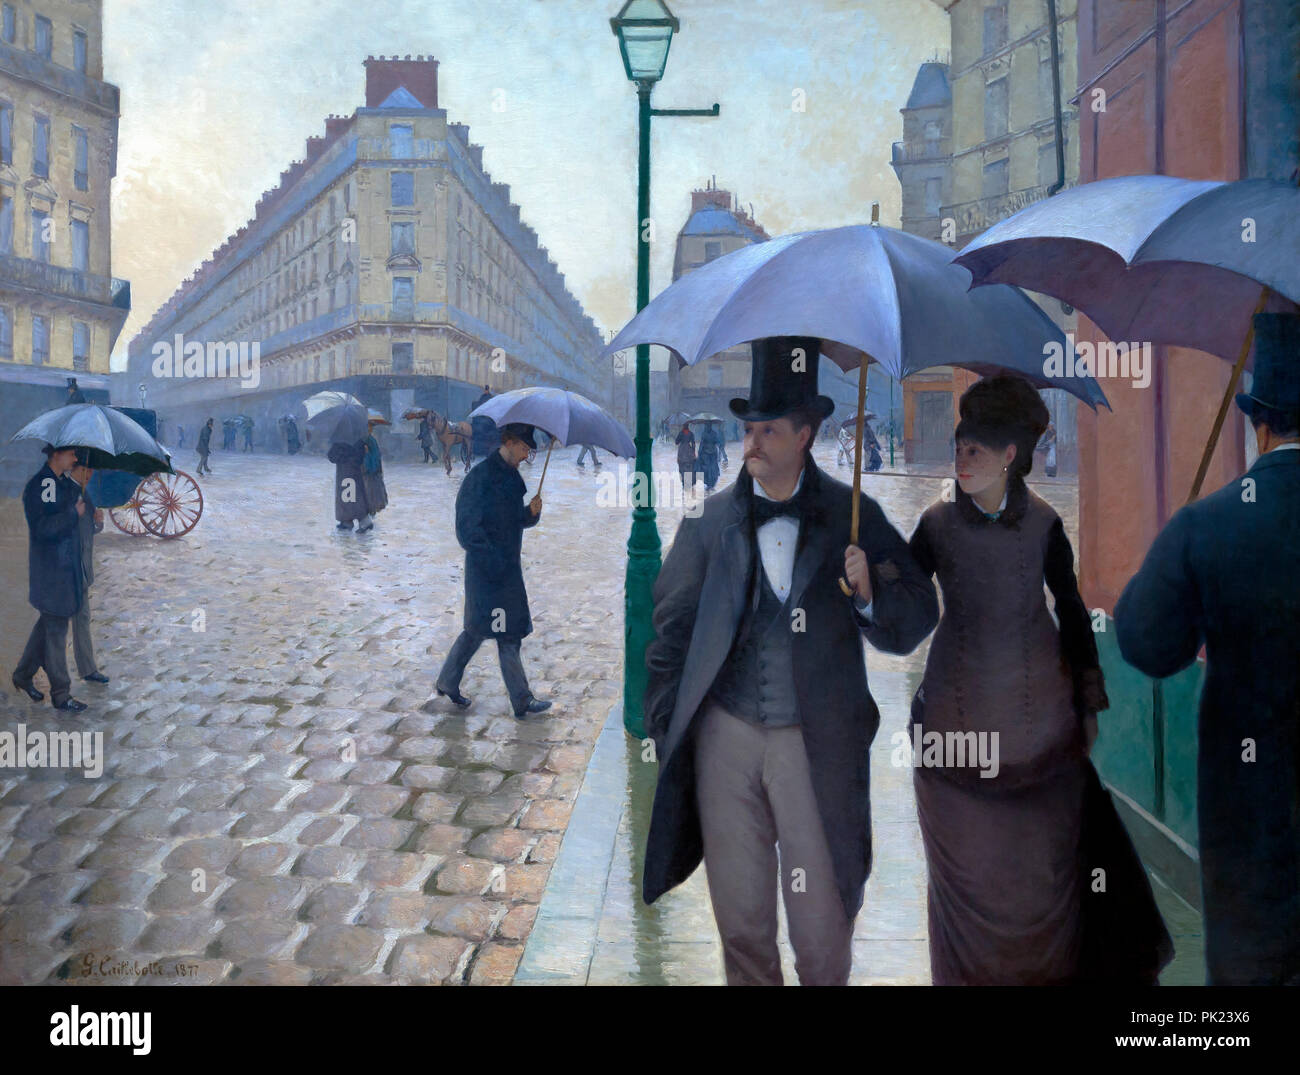 Paris Street, Rainy Day, Gustave Caillebotte, 1877, Art Institute of Chicago, Chicago, Illinois, USA, North America, - Stock Image